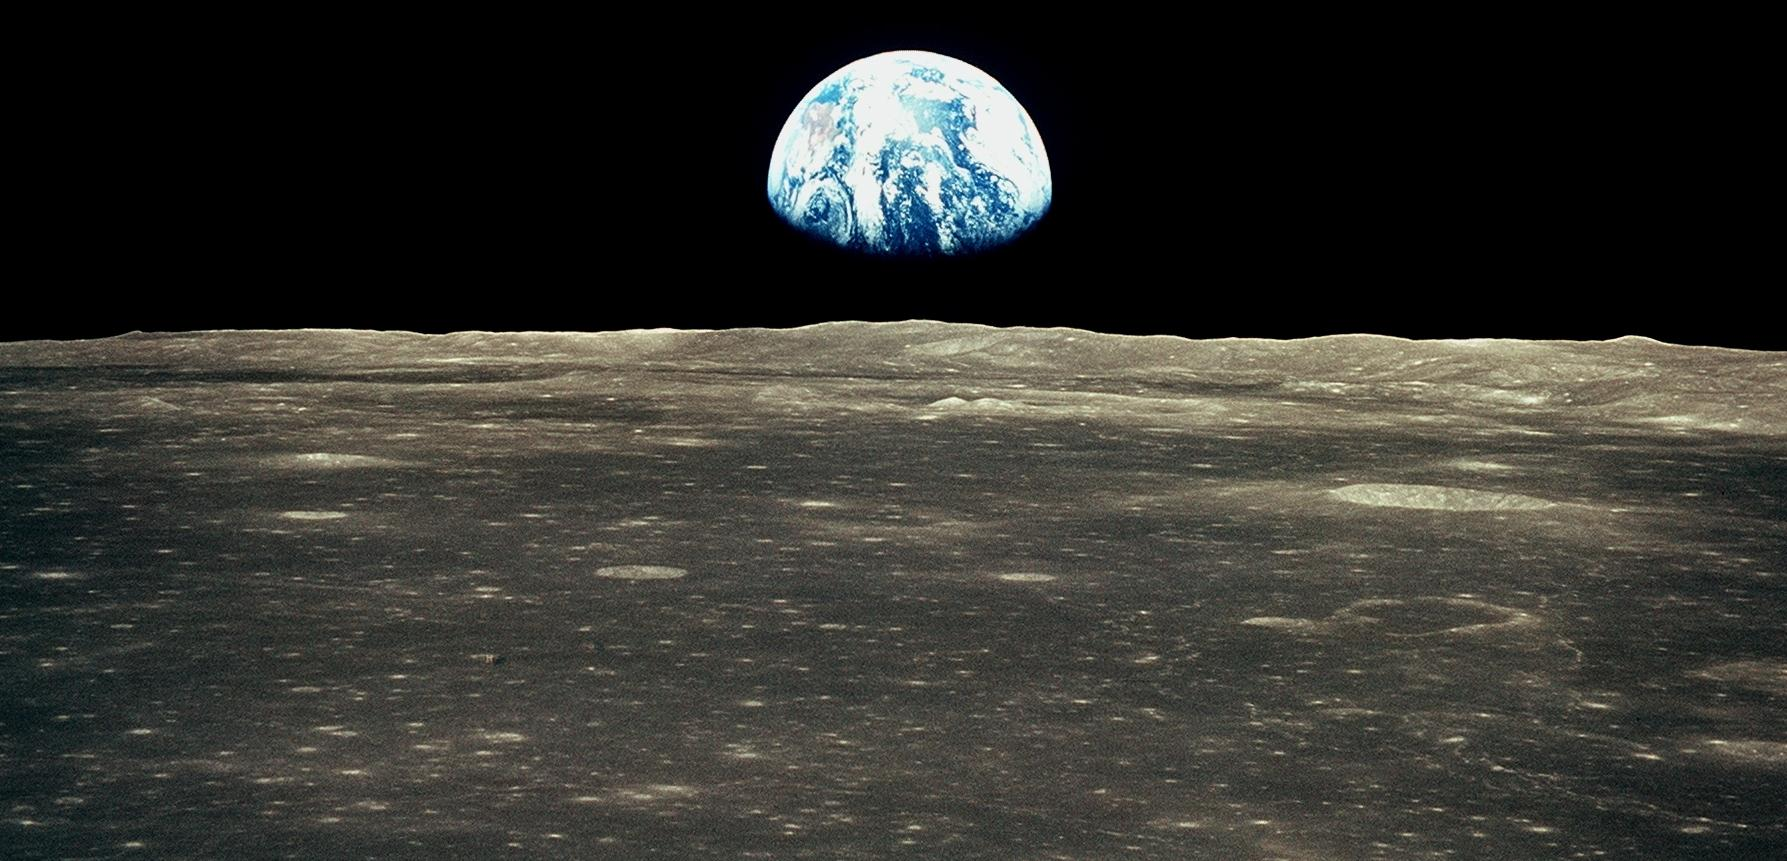 earthrise from moon apollo - photo #26